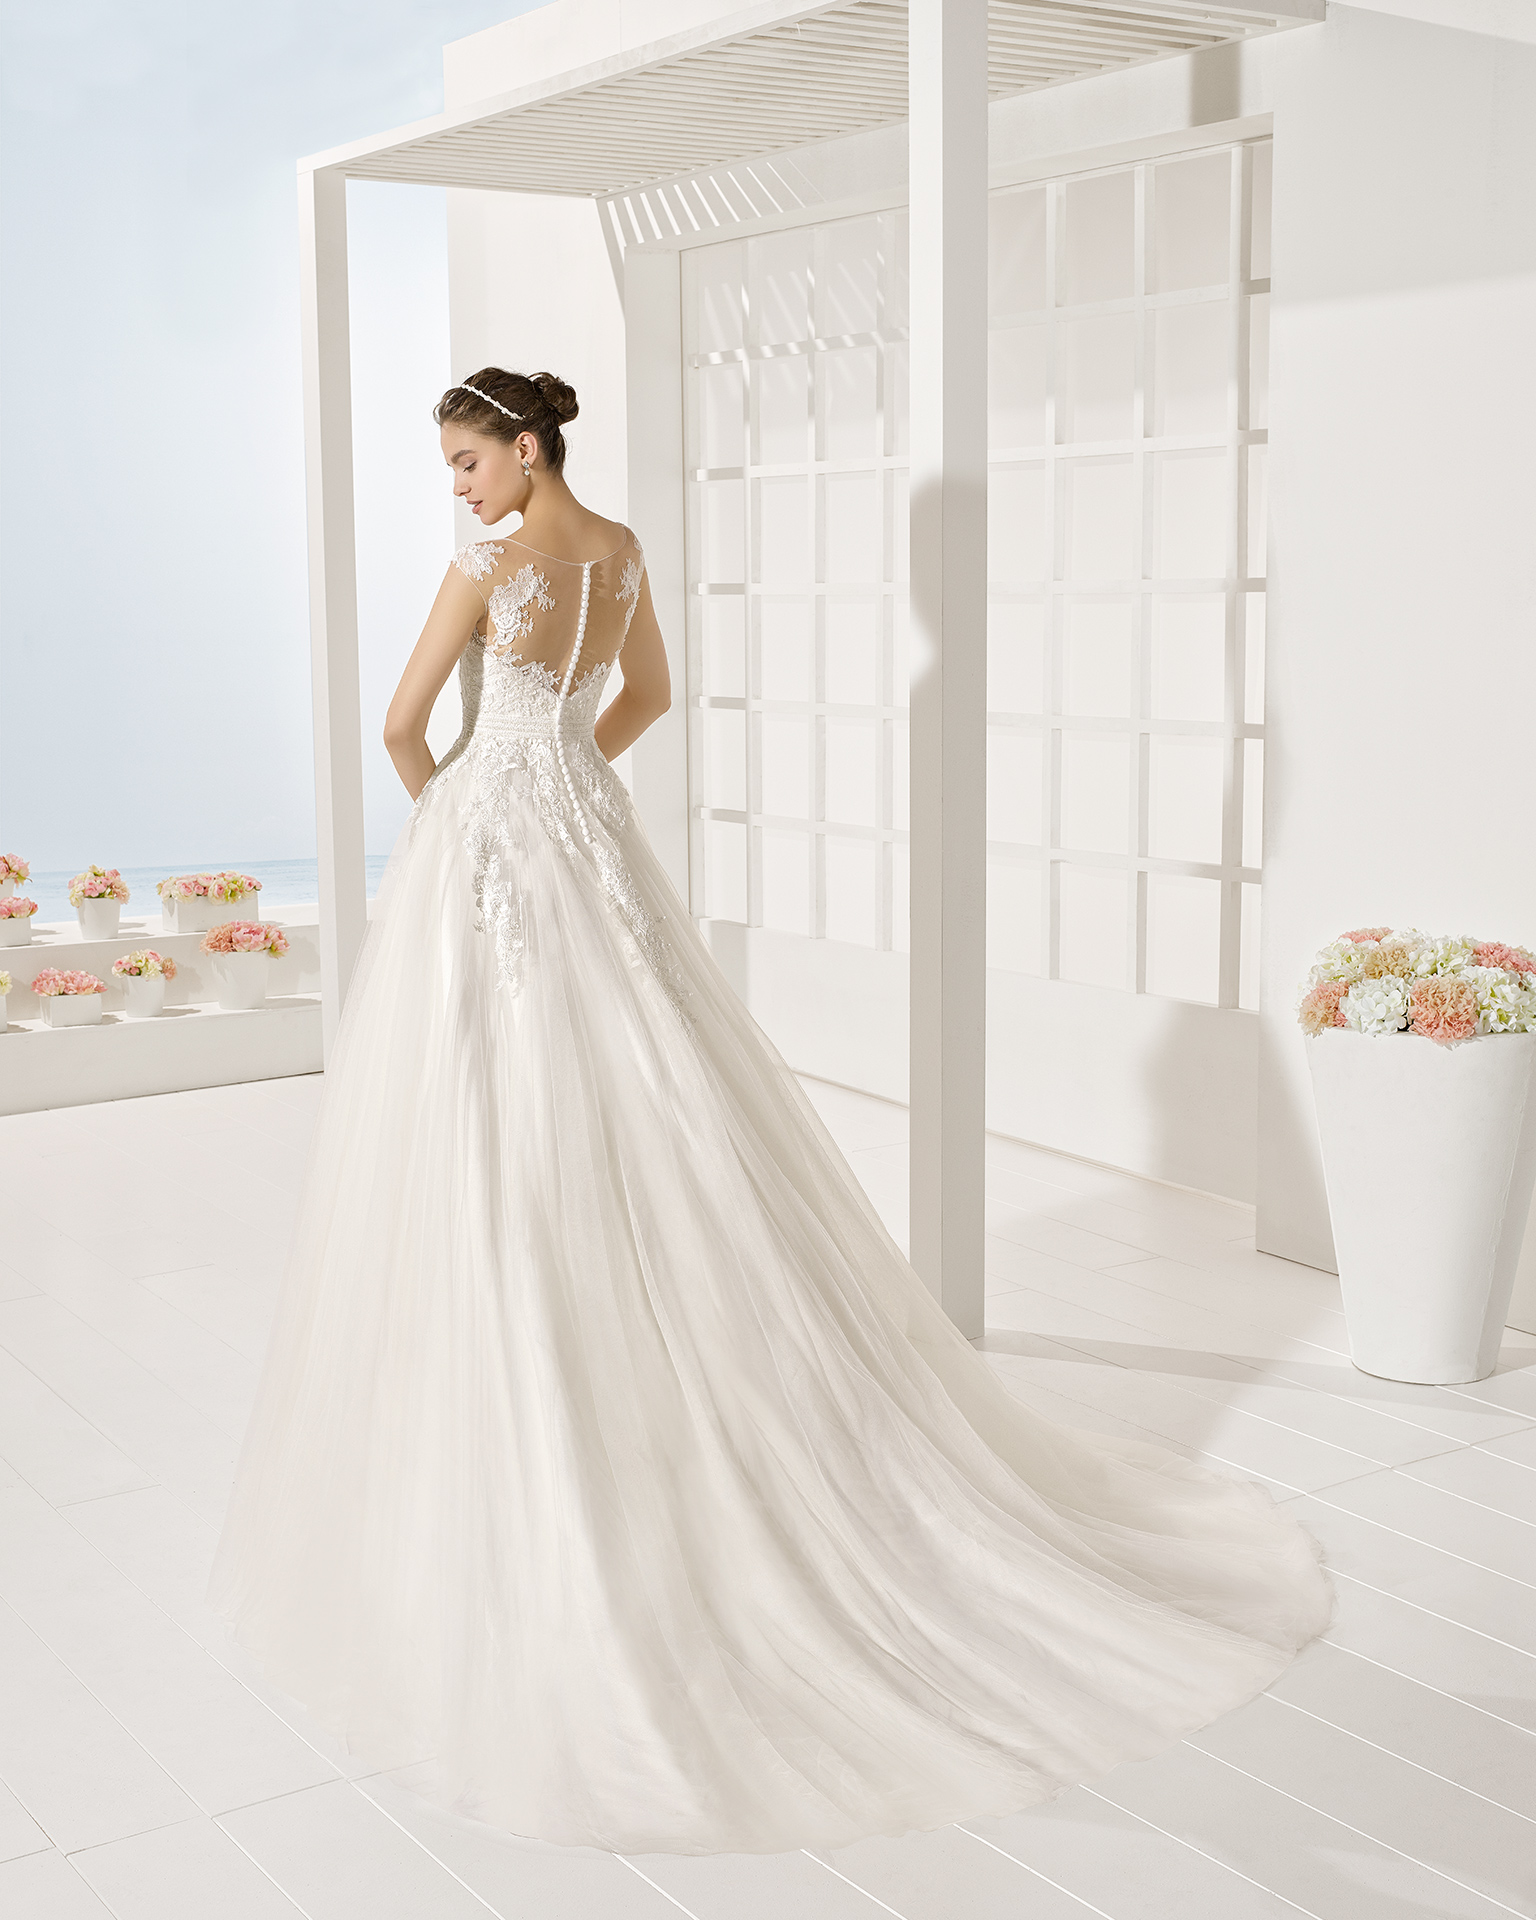 Yesal wedding dress, Luna Novias 2017